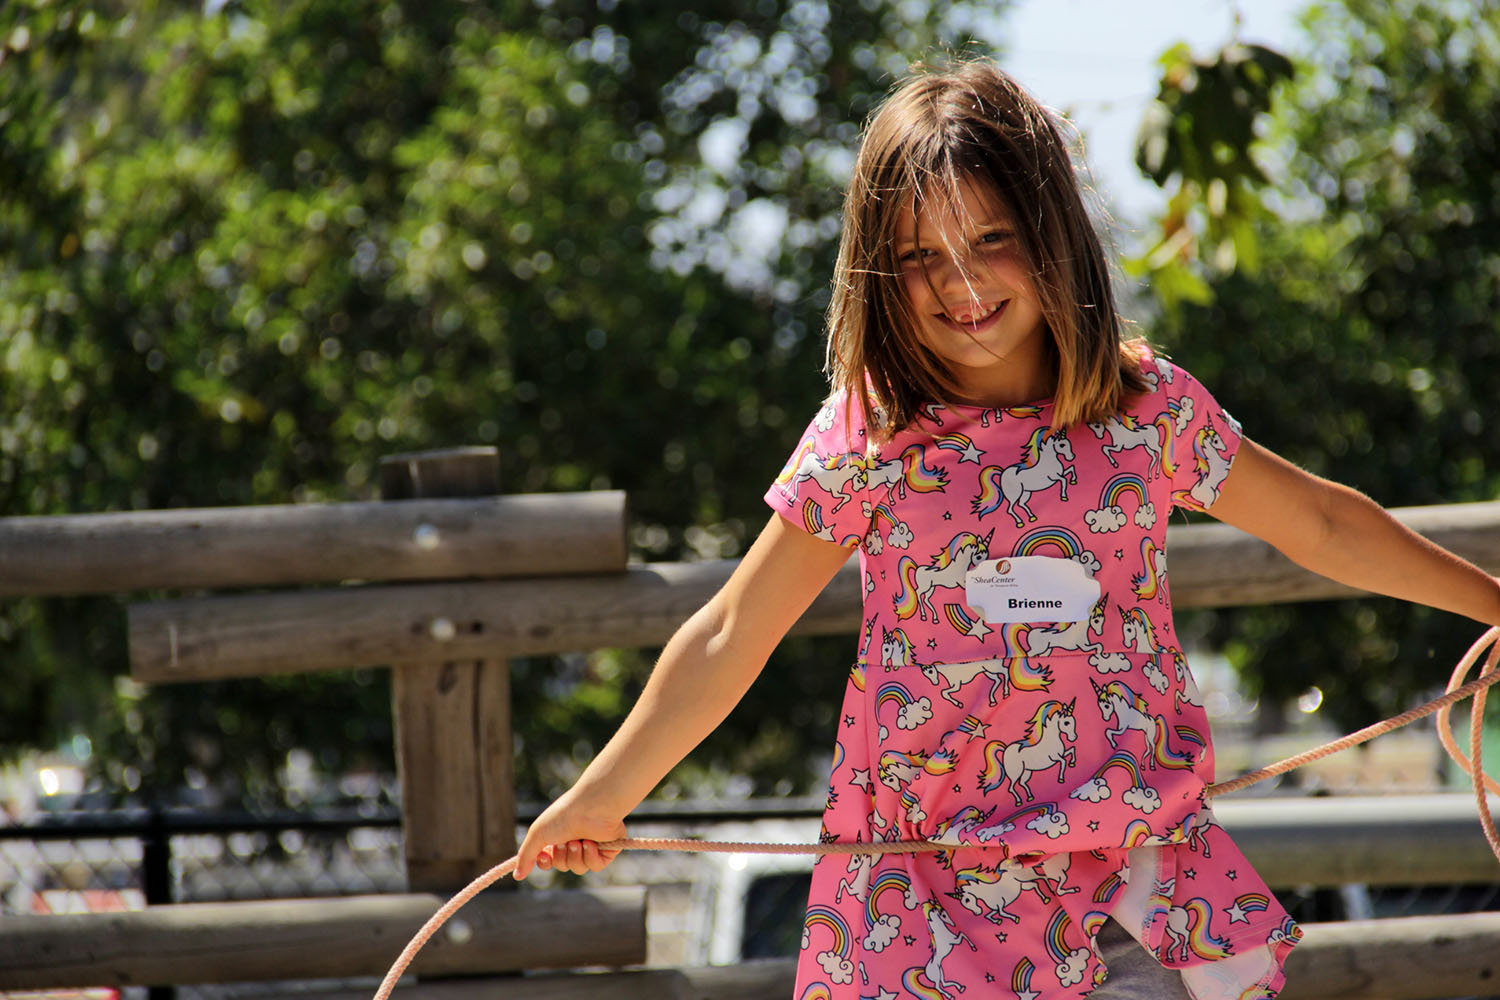 Brienne Grecho on Wednesday, Aug. 14, enjoys her time learning how to lasso at the J.F. Shea Therapeutic Riding Center, which holds its Cowboy Camp for kids ahead of this year's Rancho Mission Viejo Rodeo. Photo: Shawn Raymundo